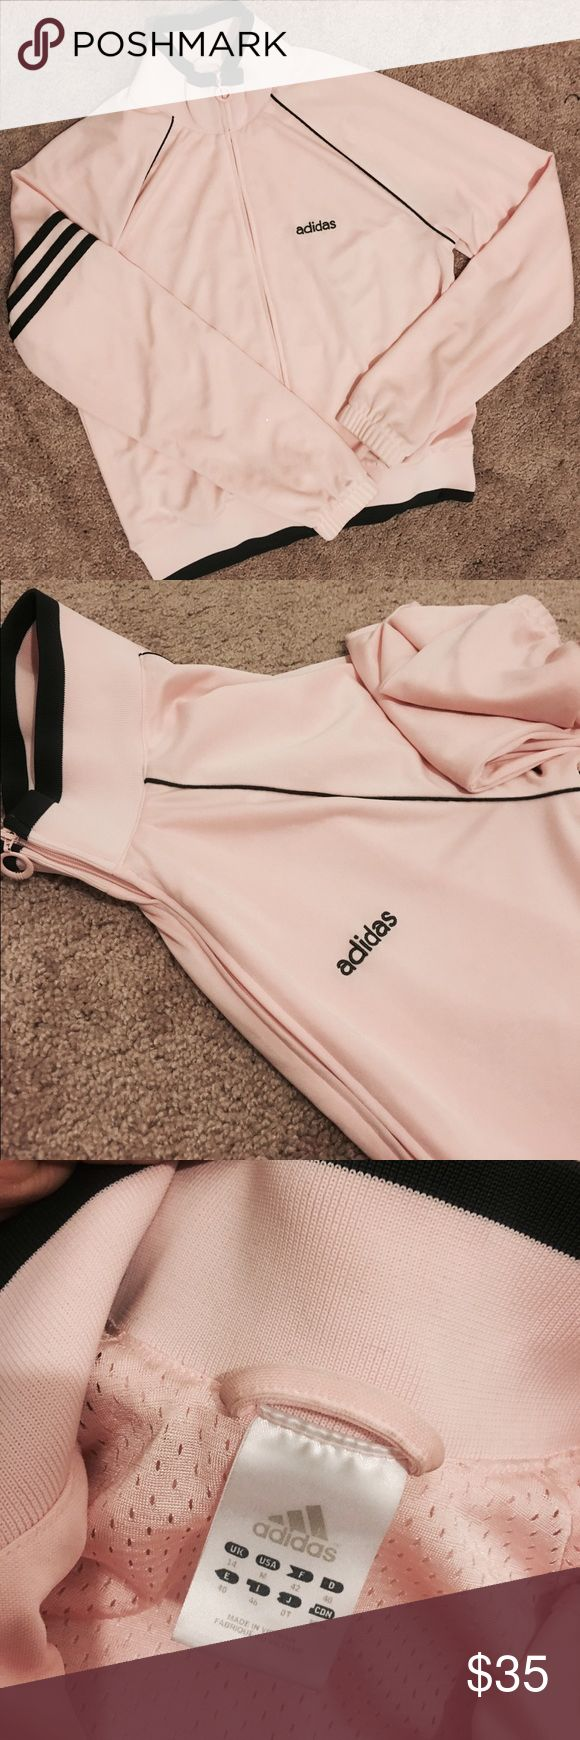 Baby Pink Adidas Jacket Got it from another posher ! It's basically brand new but I realized I don't like wearing pink. I like pullover jackets or windbreaks better so I'm selling. Size M but fits like a small. No flaws. Comes from a smoke free home. PRICE IS FIRM. **** THIS IS AUTHENTIC. I'm not sure how someone is going to fake this brand but I got it from a trusted posher who sells nothing but workout and sporty gear. Not all adidas jackets look the same. Adidas Jackets & Coats